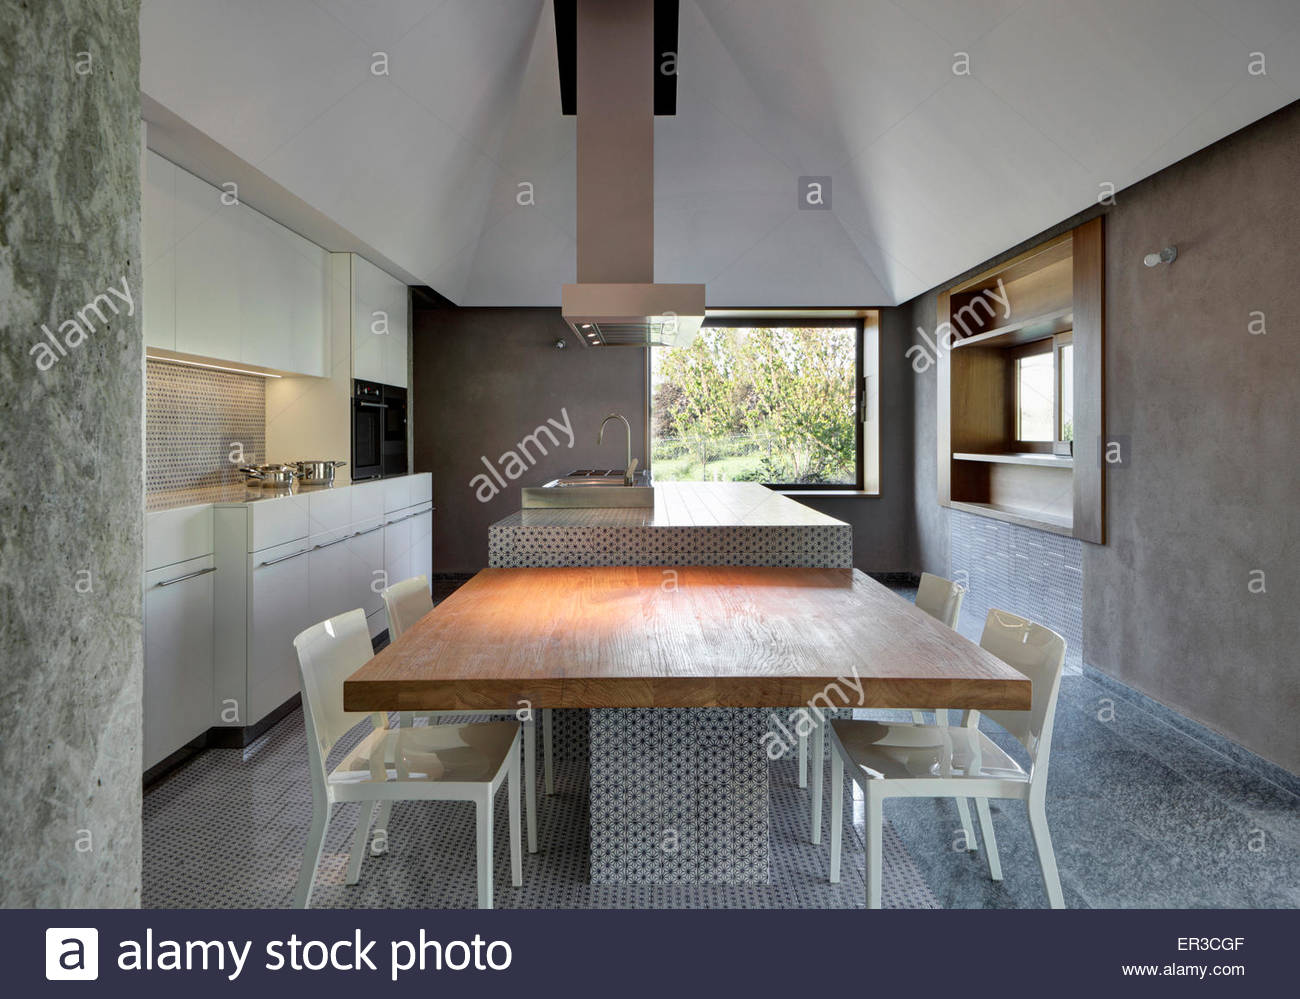 Kitchen Island Extractor kitchen island unit stock photos & kitchen island unit stock